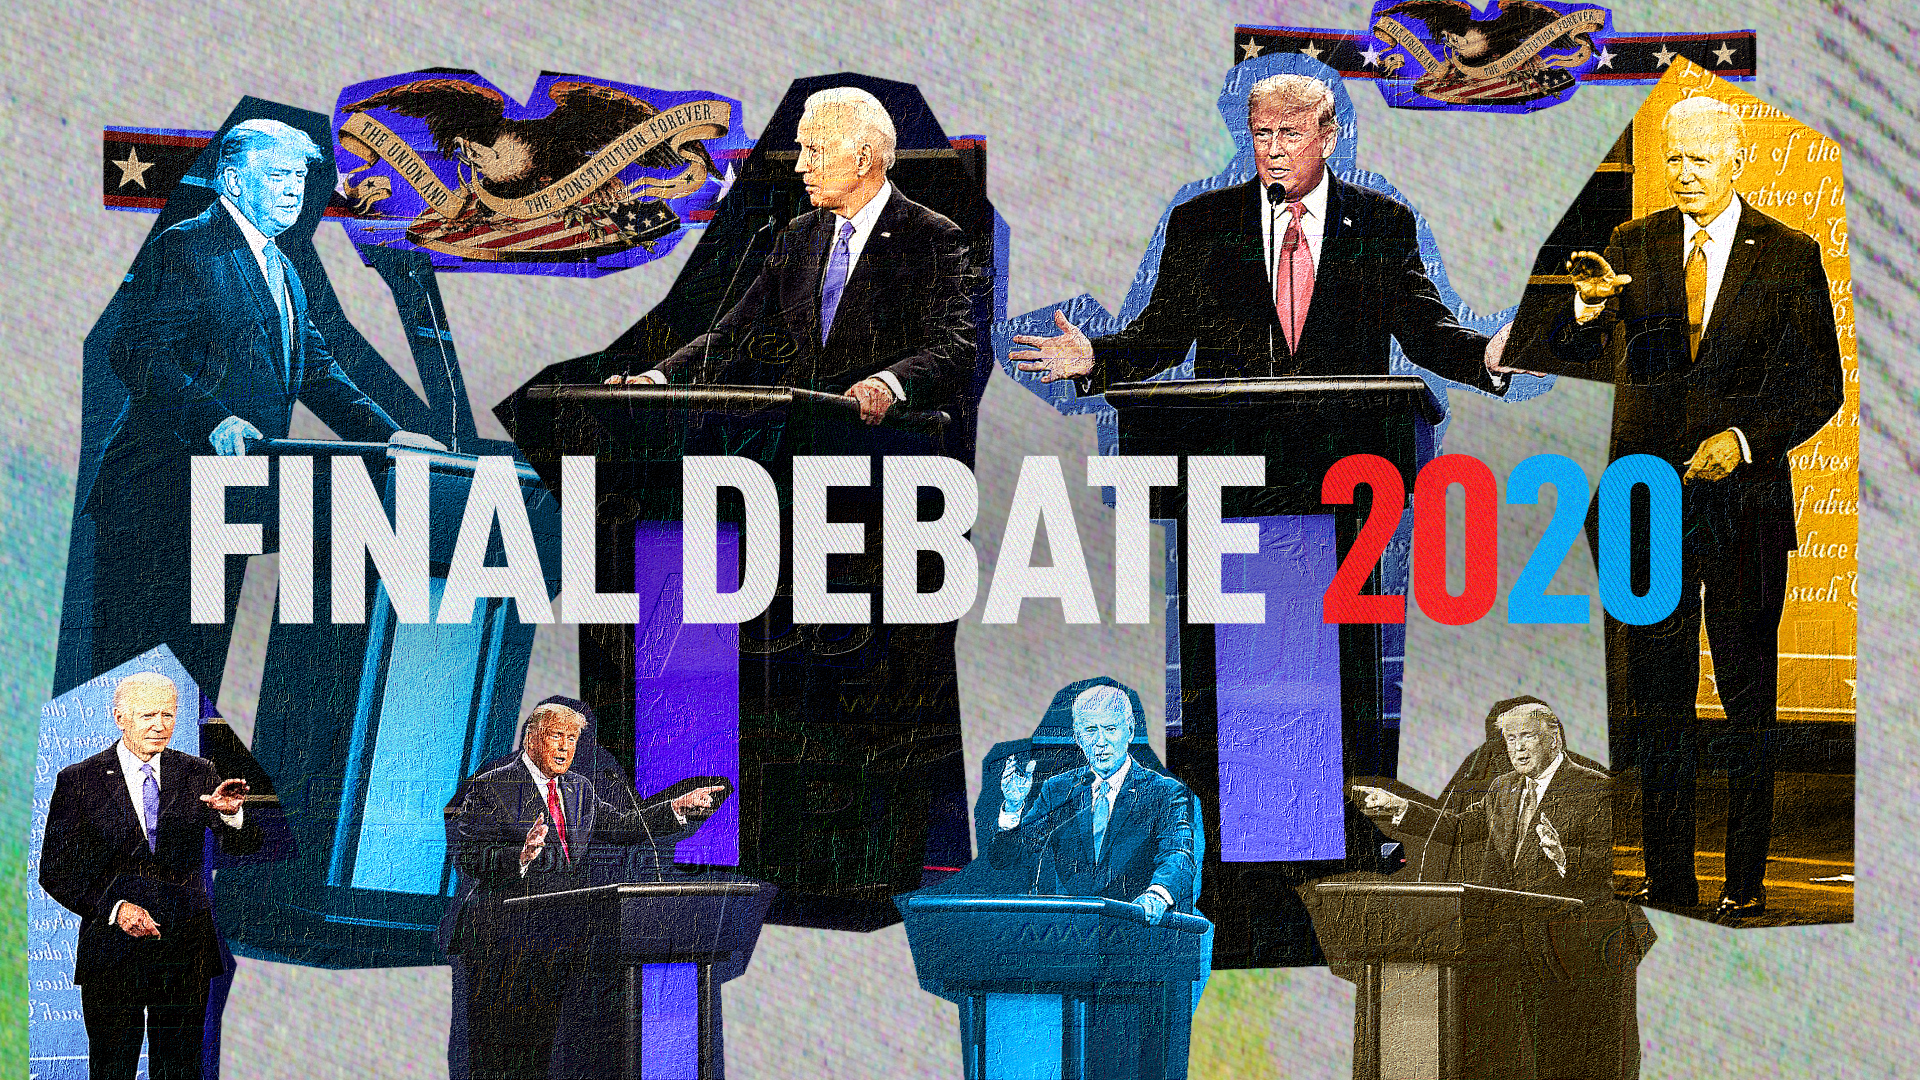 Must-See Moments from the Final Presidential Debate